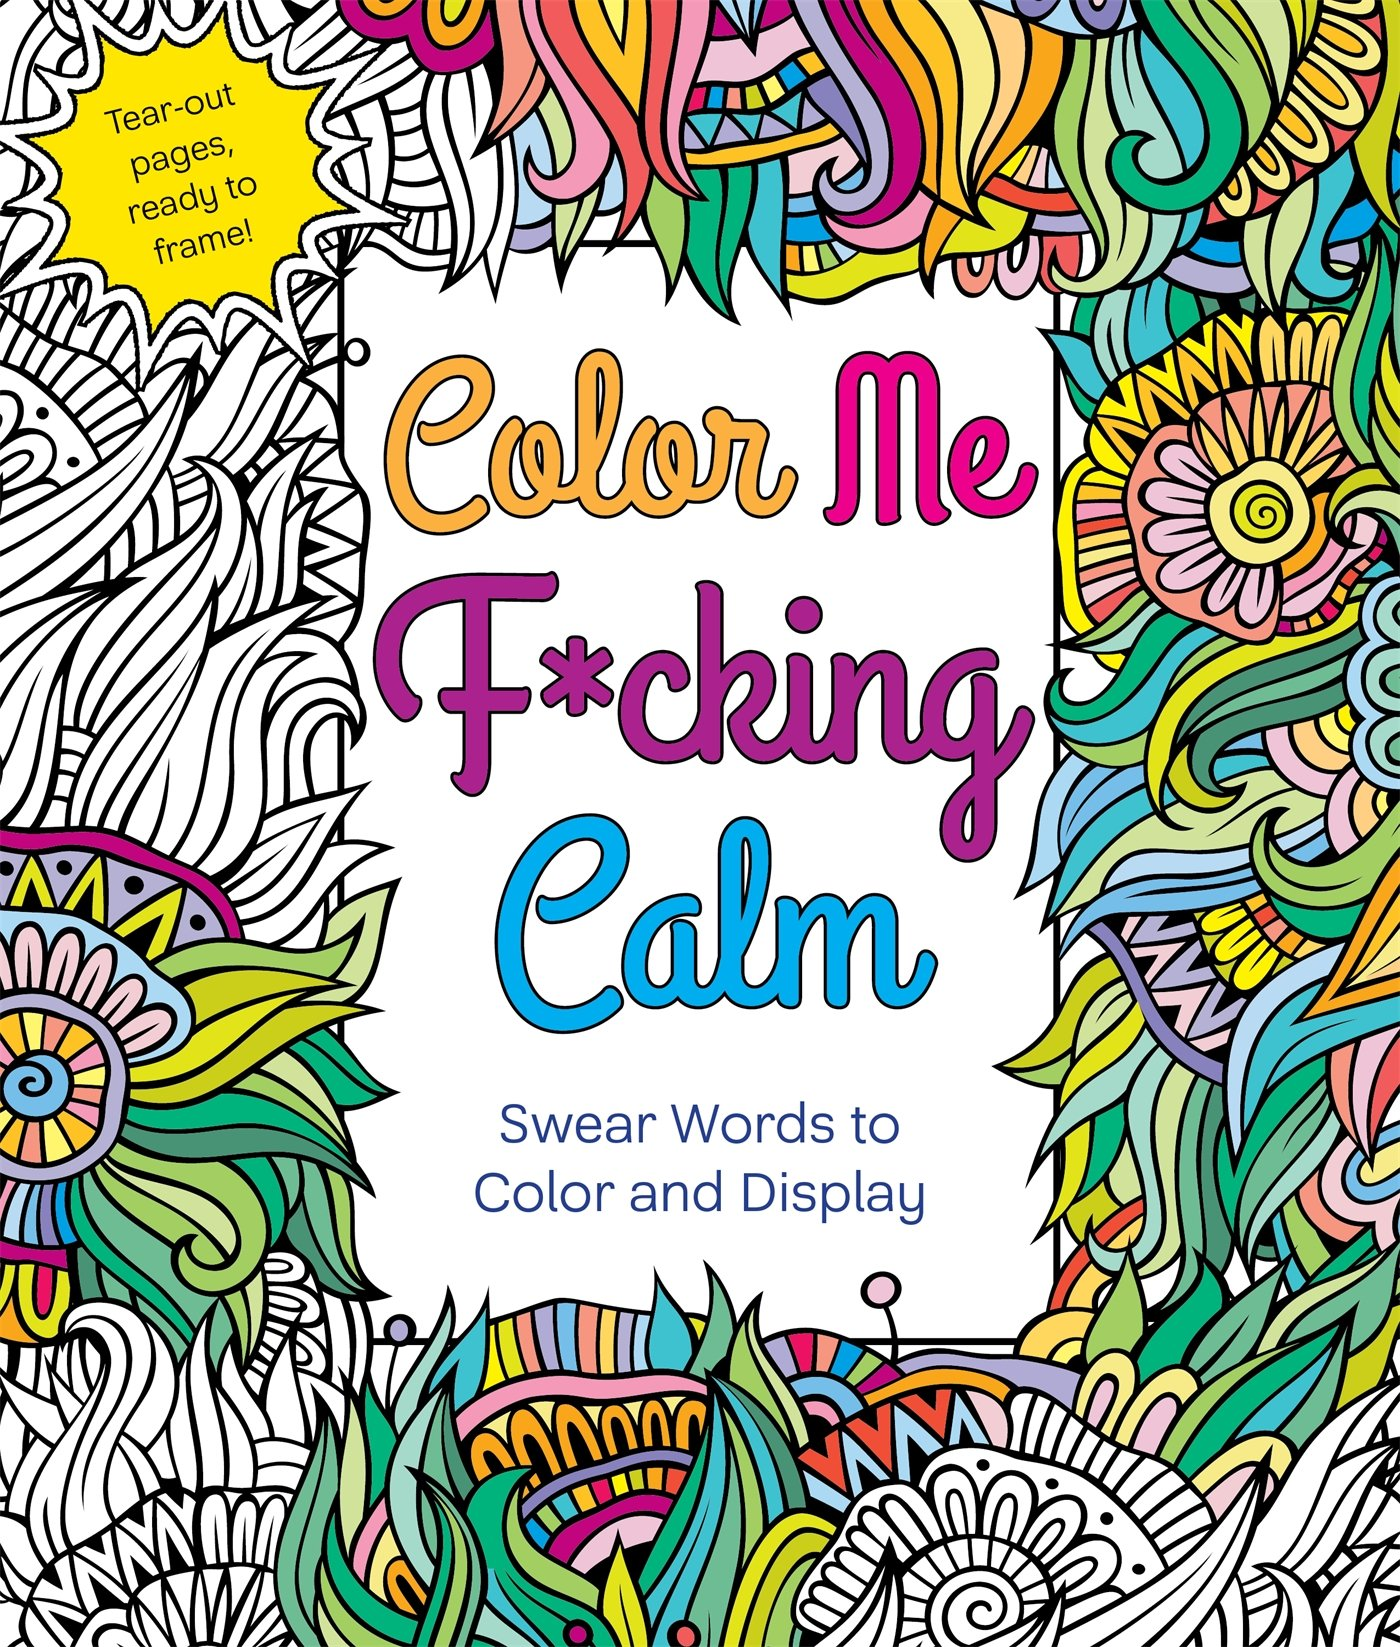 Amazon Color Me Fcking Calm Swear Words to Color and